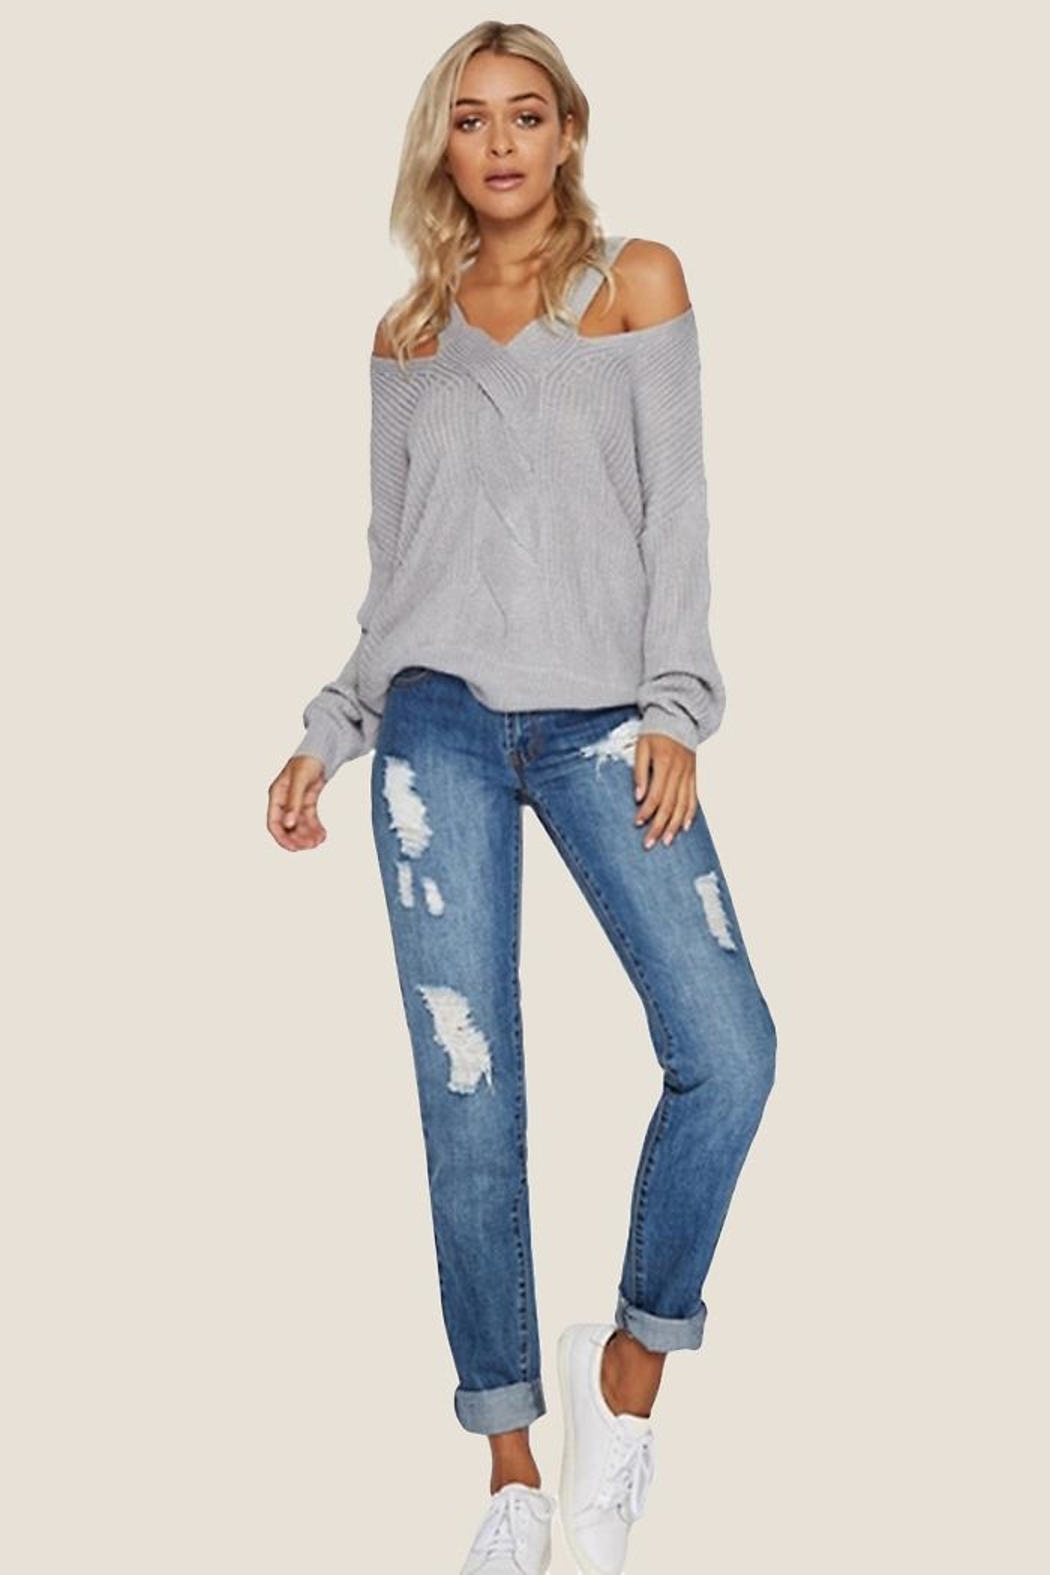 People Outfitter Silver Light Top - Front Full Image